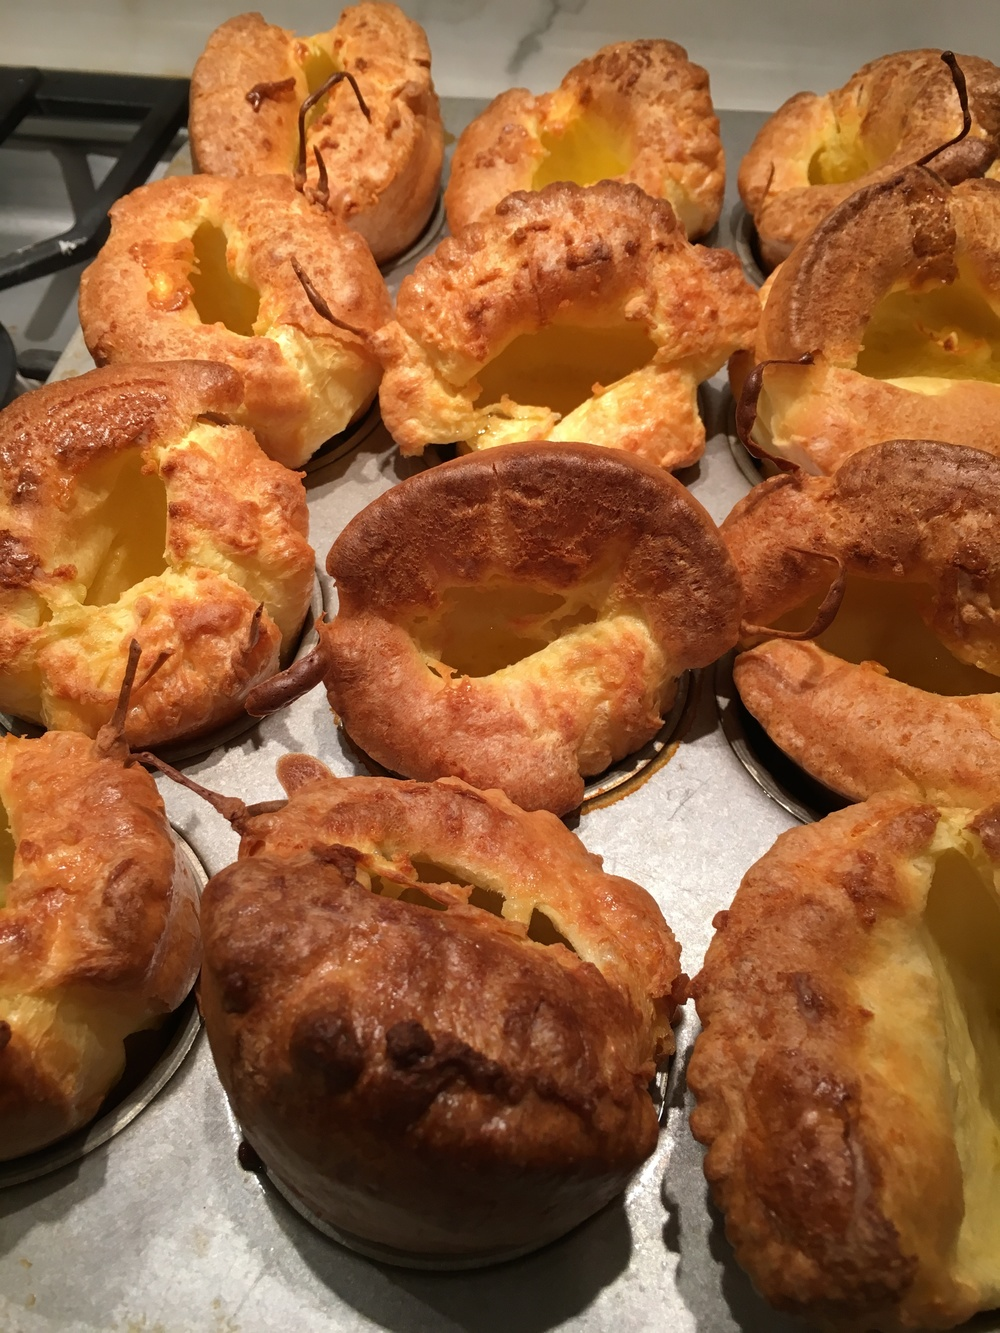 The best side to serve with this - Yorkshire Pudding. REcipe below.